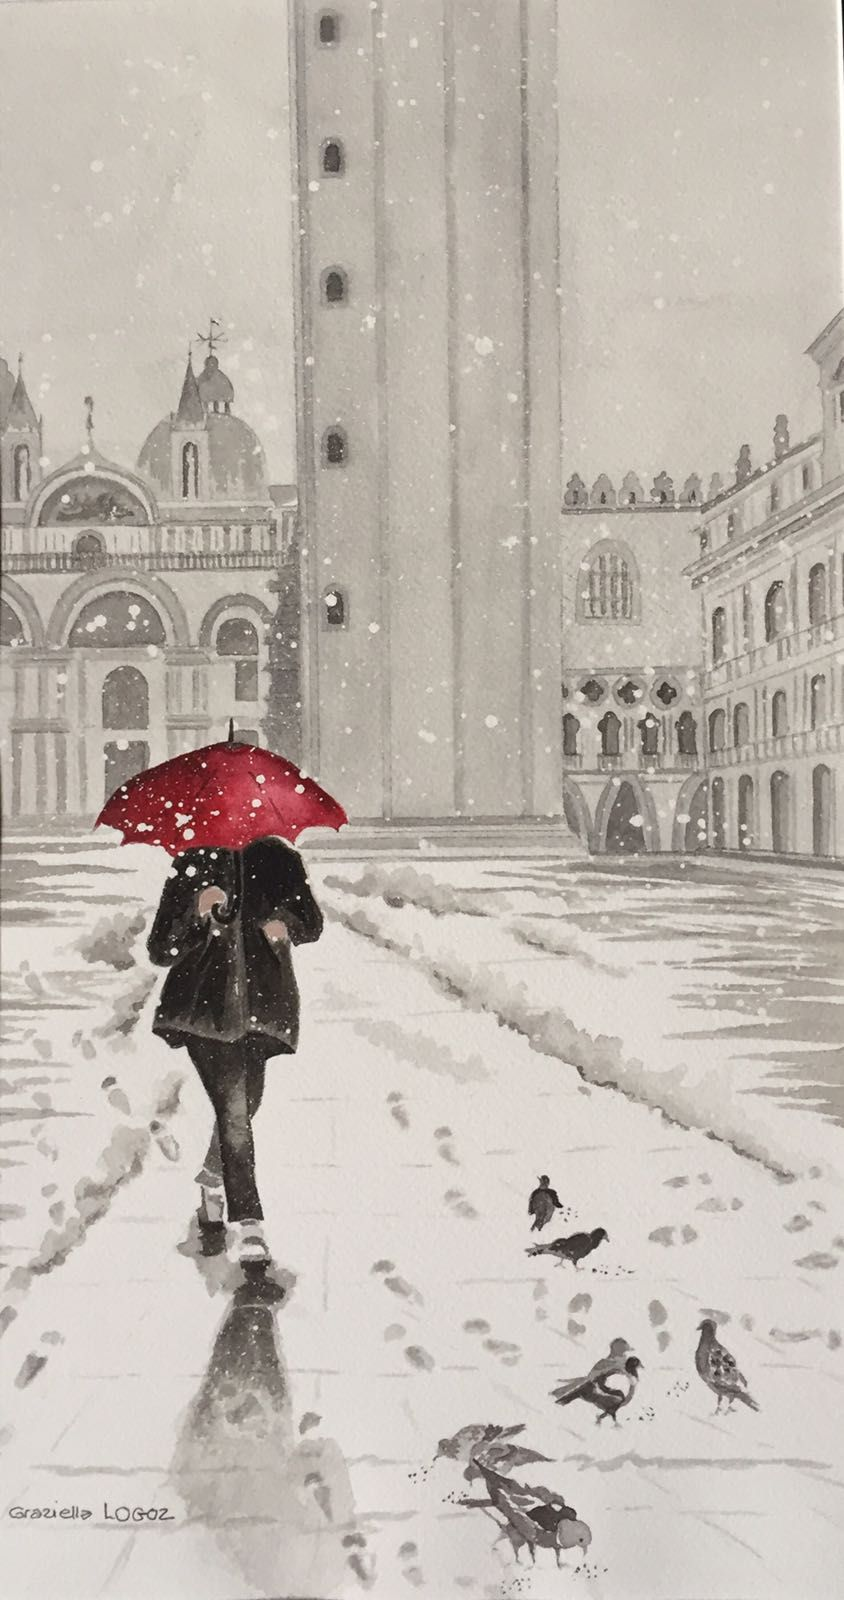 Aquarelle Le Parapluie Rouge Venise Collection Privee